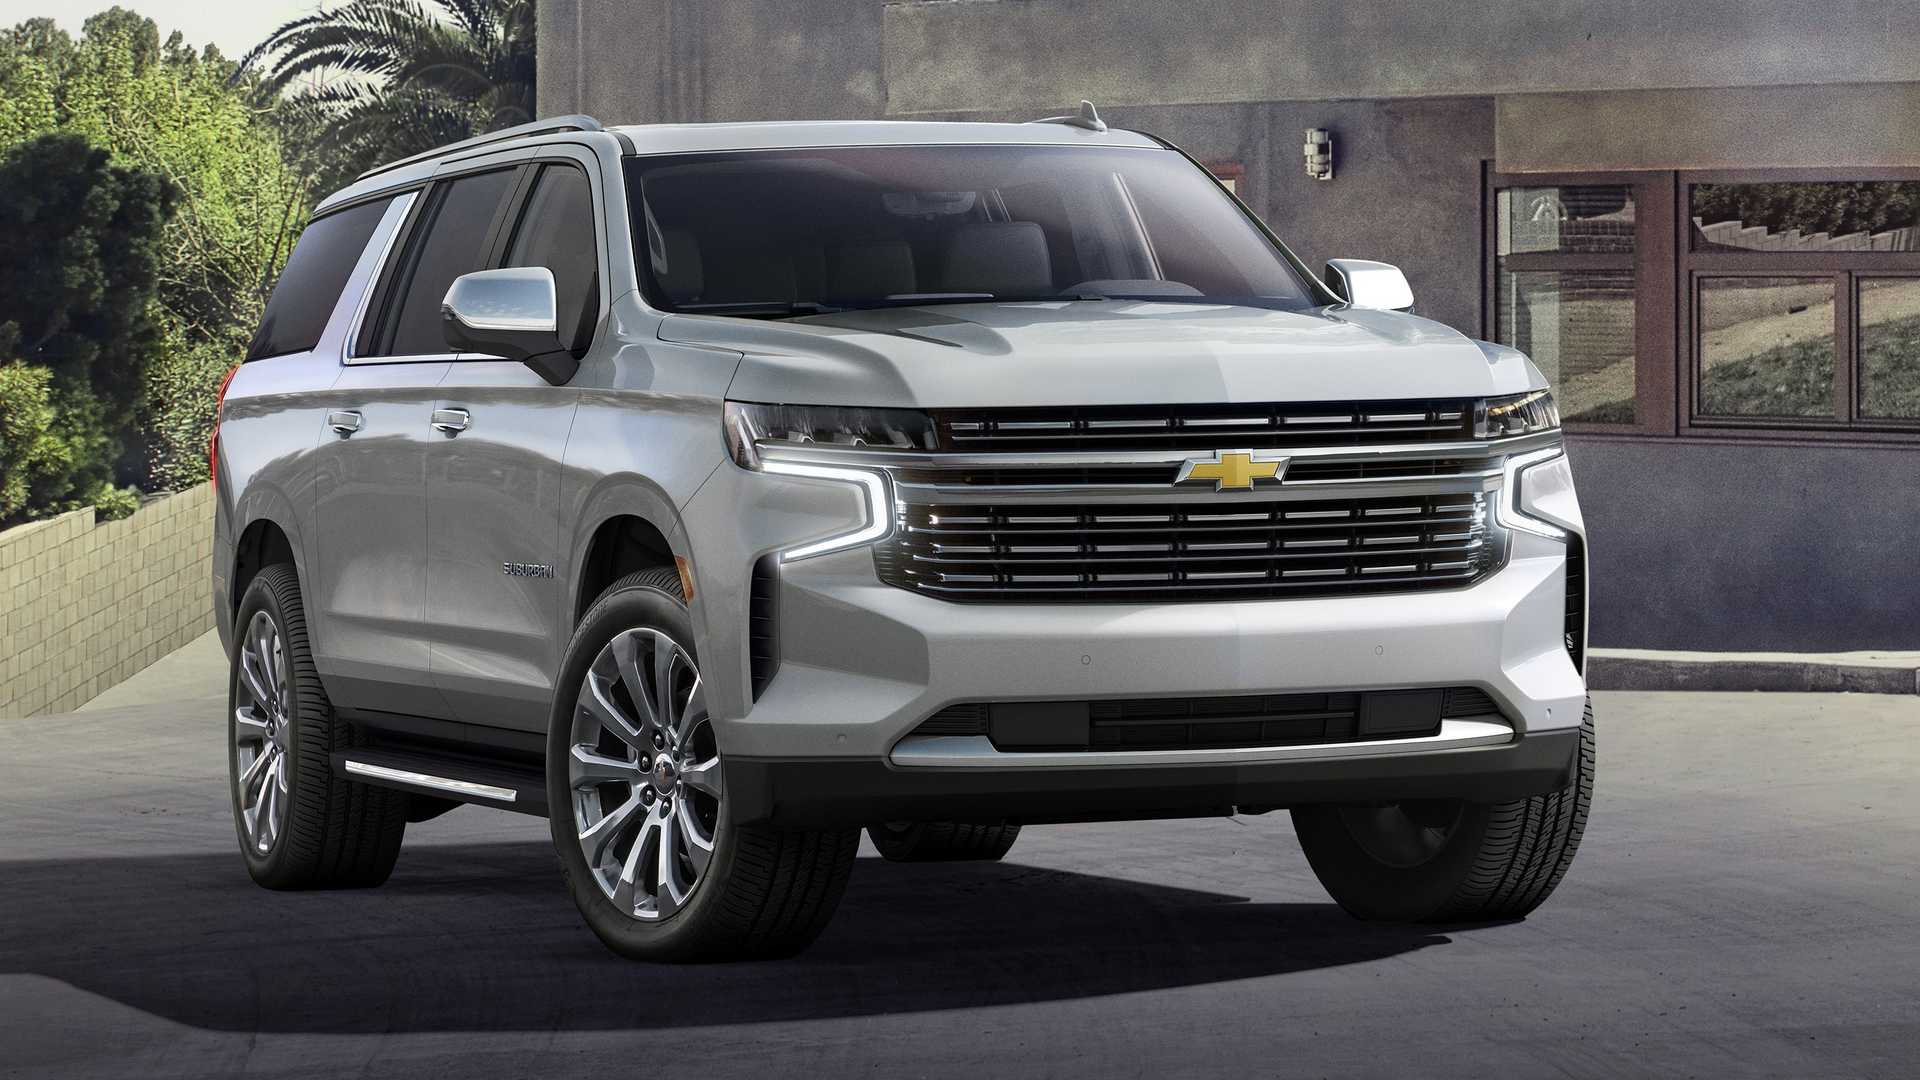 Chevrolet has unveiled the 2020 Tahoe and Suburban lineup. Both SUVs now look similar to the latest Silverado truck, but the novelty goes much farther than that.